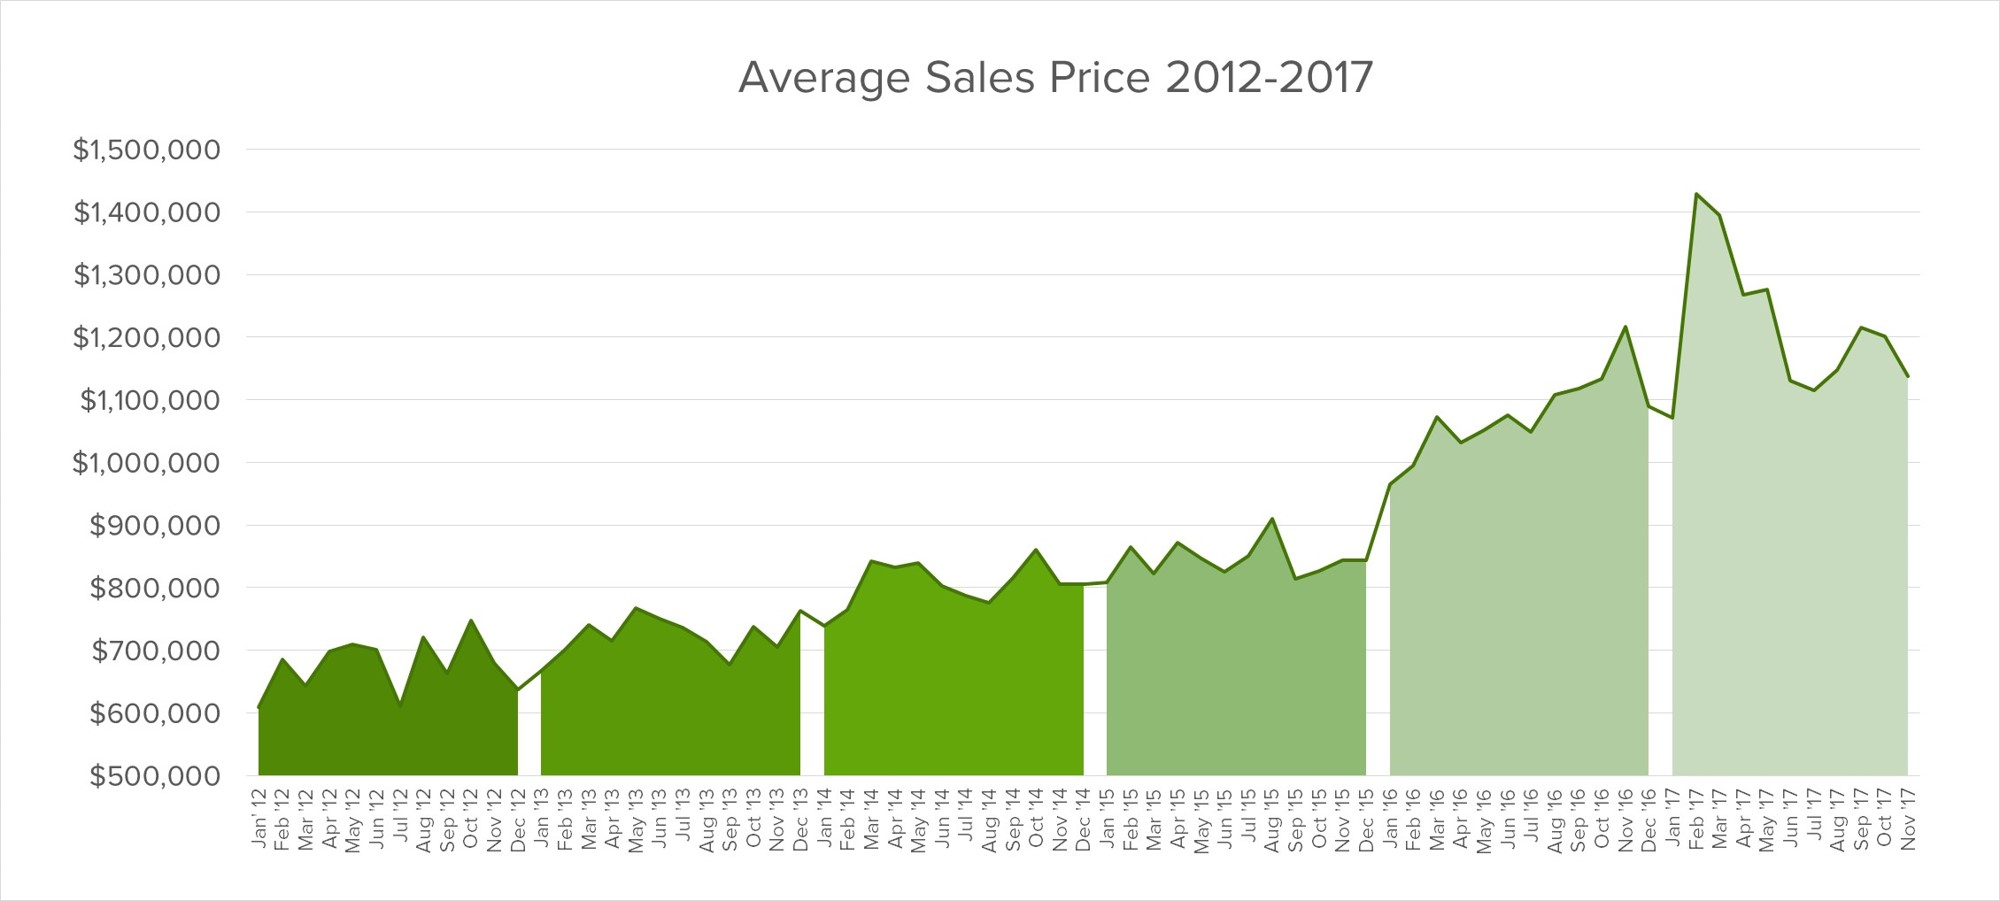 oakville-average-sales-prices.jpg